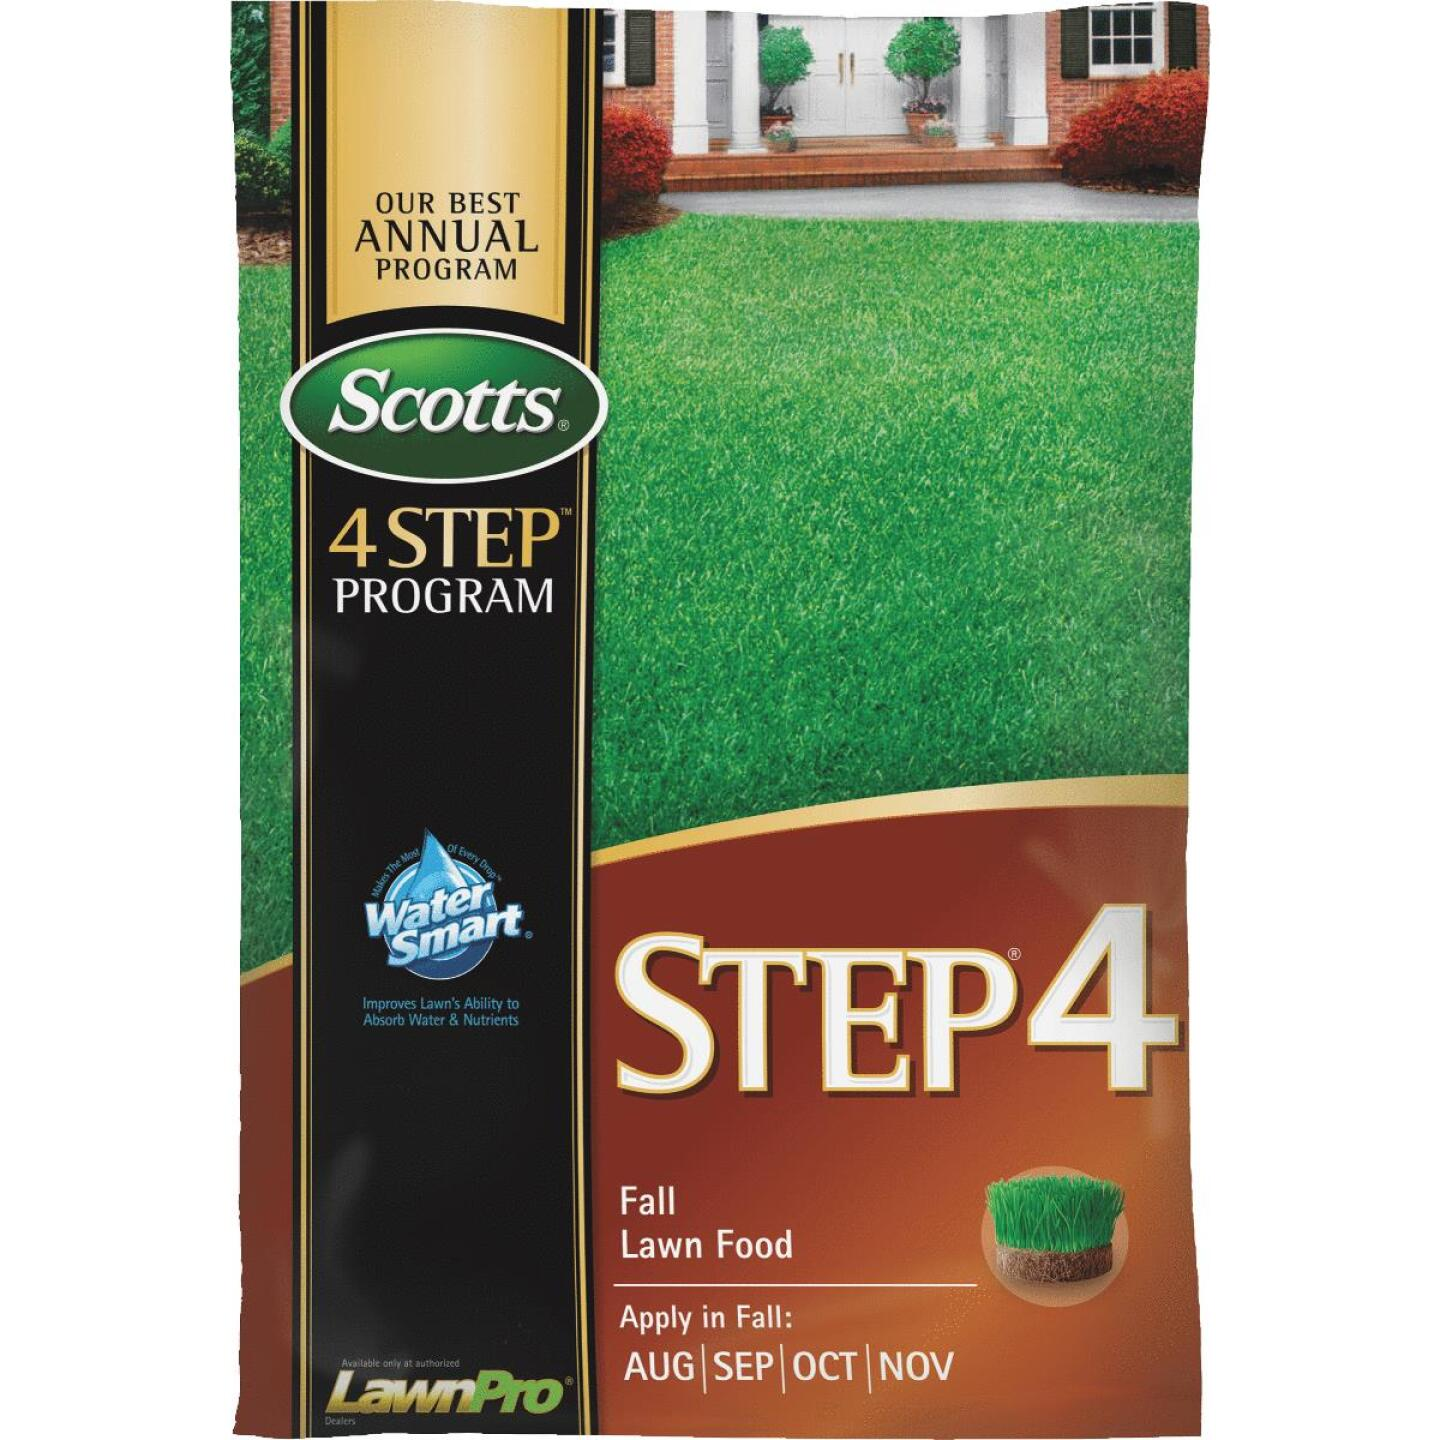 Scotts 4-Step Program Step 4 37.84 Lb. 15,000 Sq. Ft. 32-0-12 Fall Lawn Fertilizer Image 1